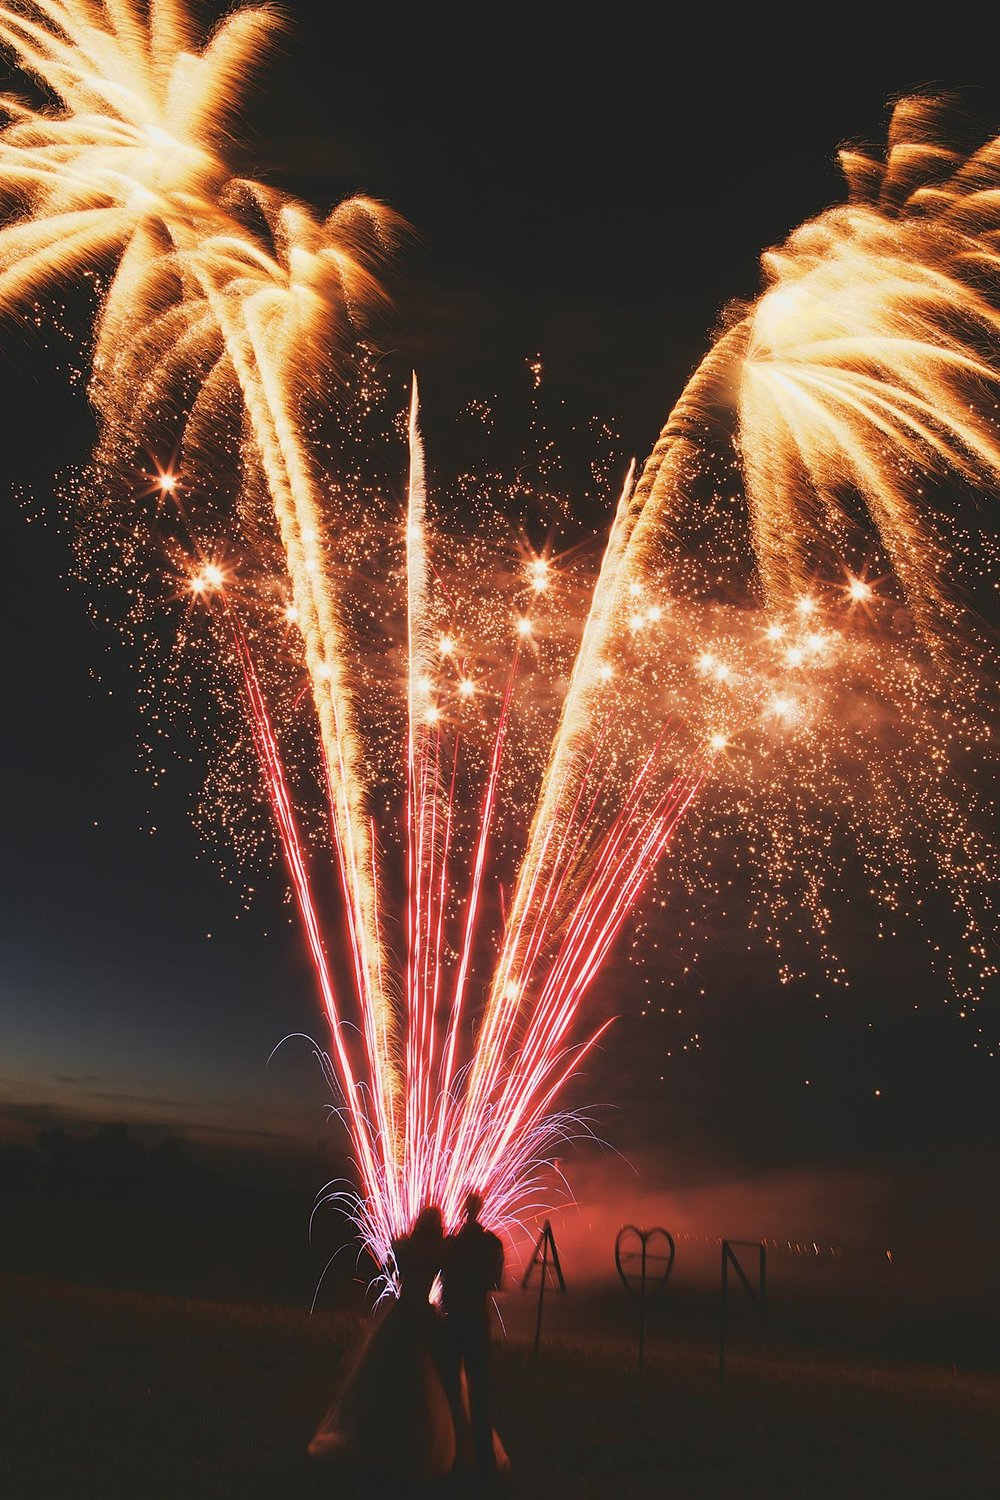 Fireworks Display at Huntstile Farm